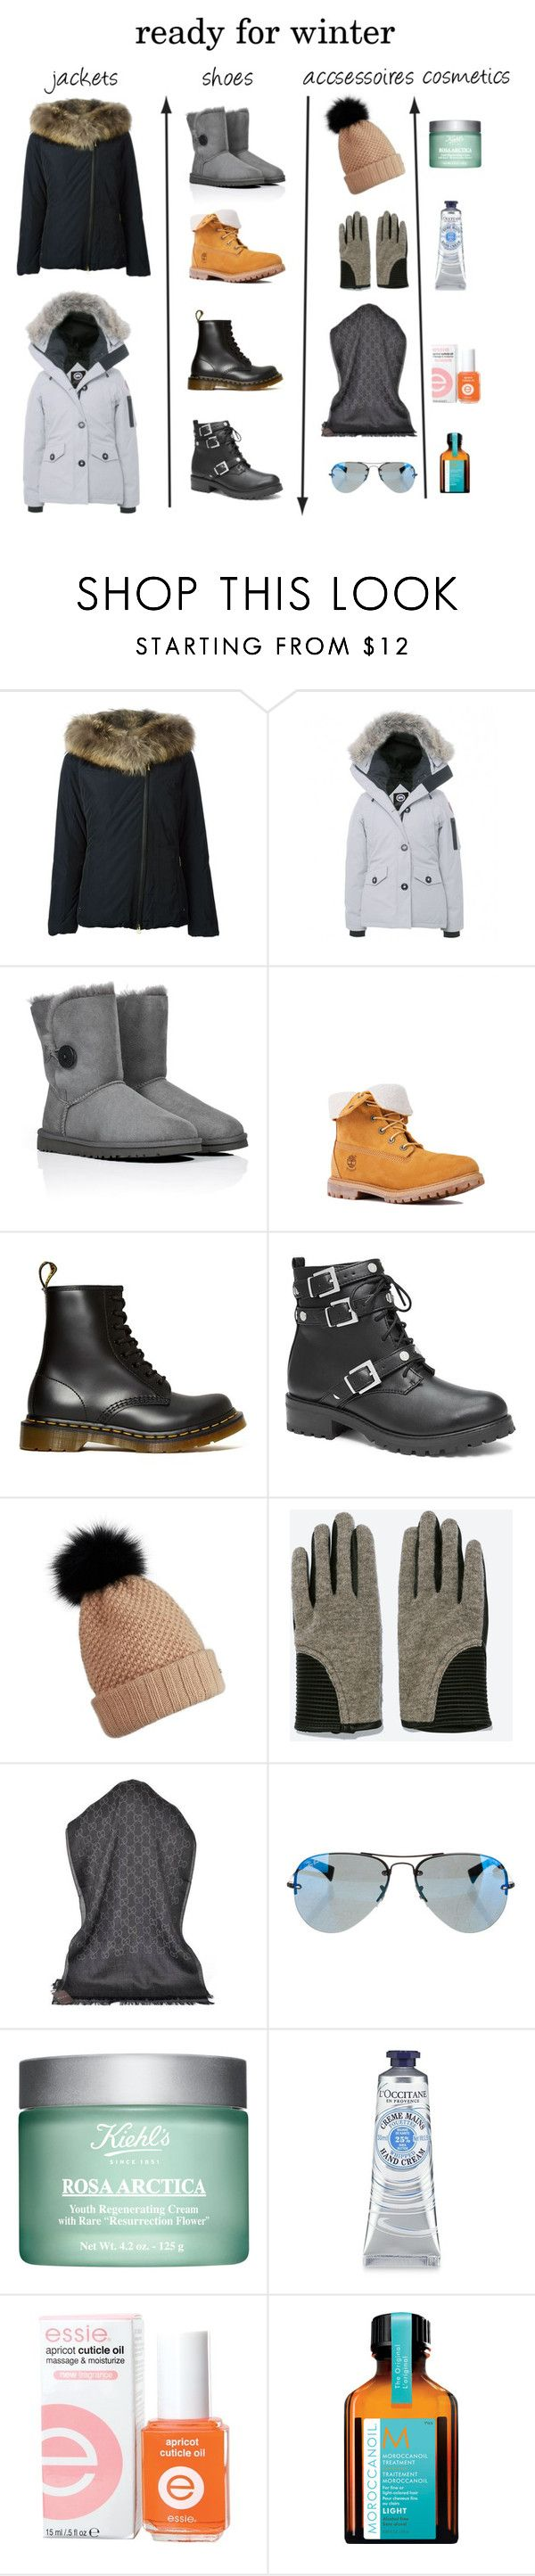 """""""ready for winter"""" by elinvar ❤ liked on Polyvore featuring Woolrich, Canada Goose, UGG Australia, Timberland, Dr. Martens, Victoria's Secret, Burberry, Zara, Gucci and Ray-Ban"""